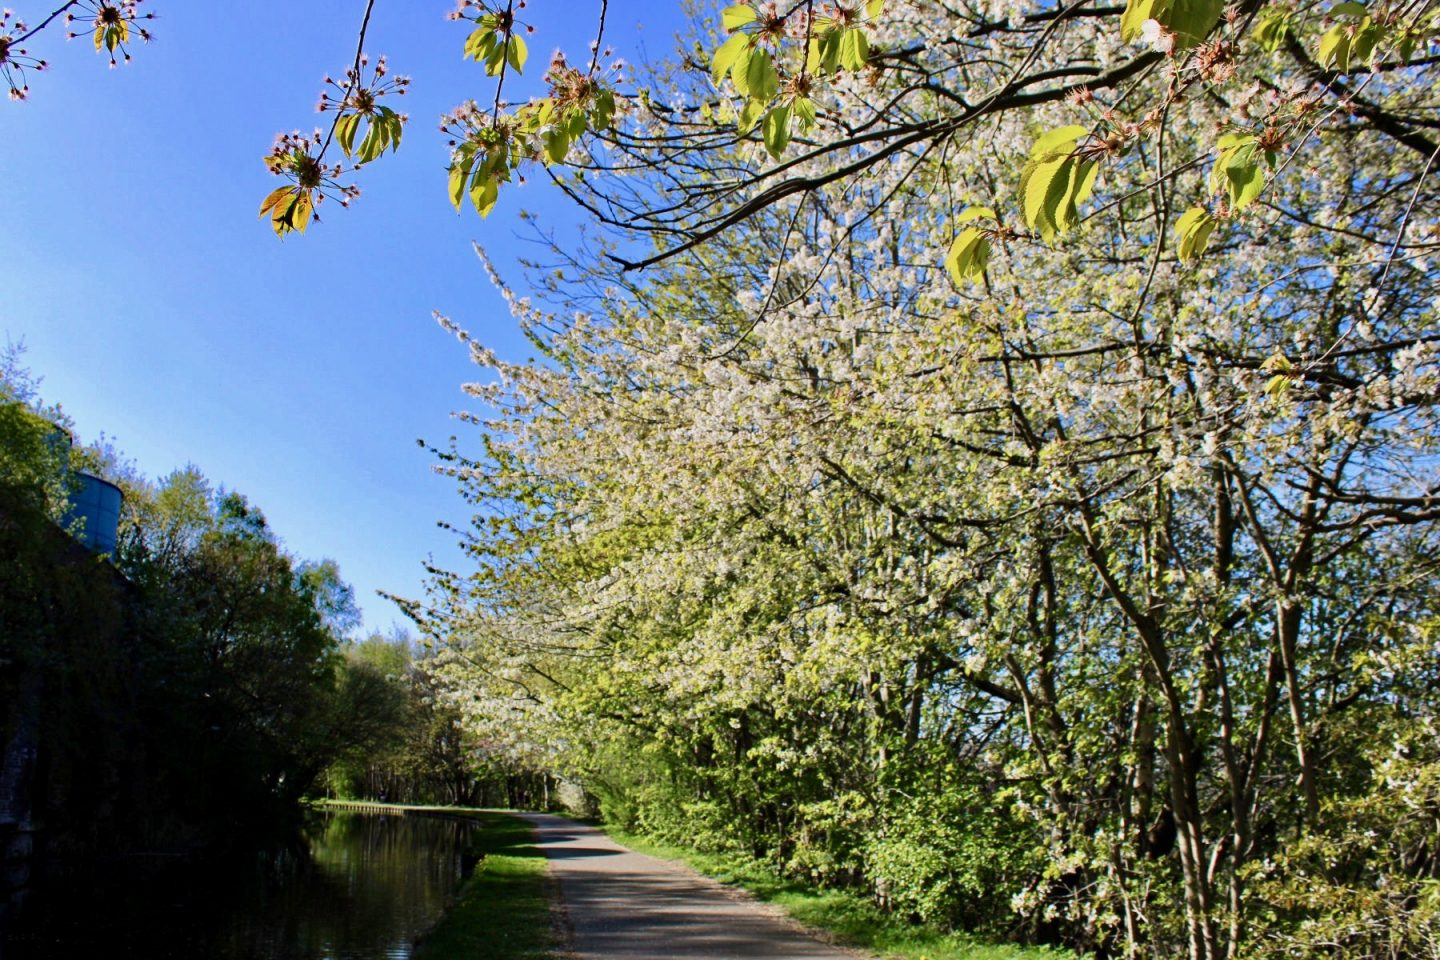 Daily lockdown exercise walk: the canal path with blossom hanging over it